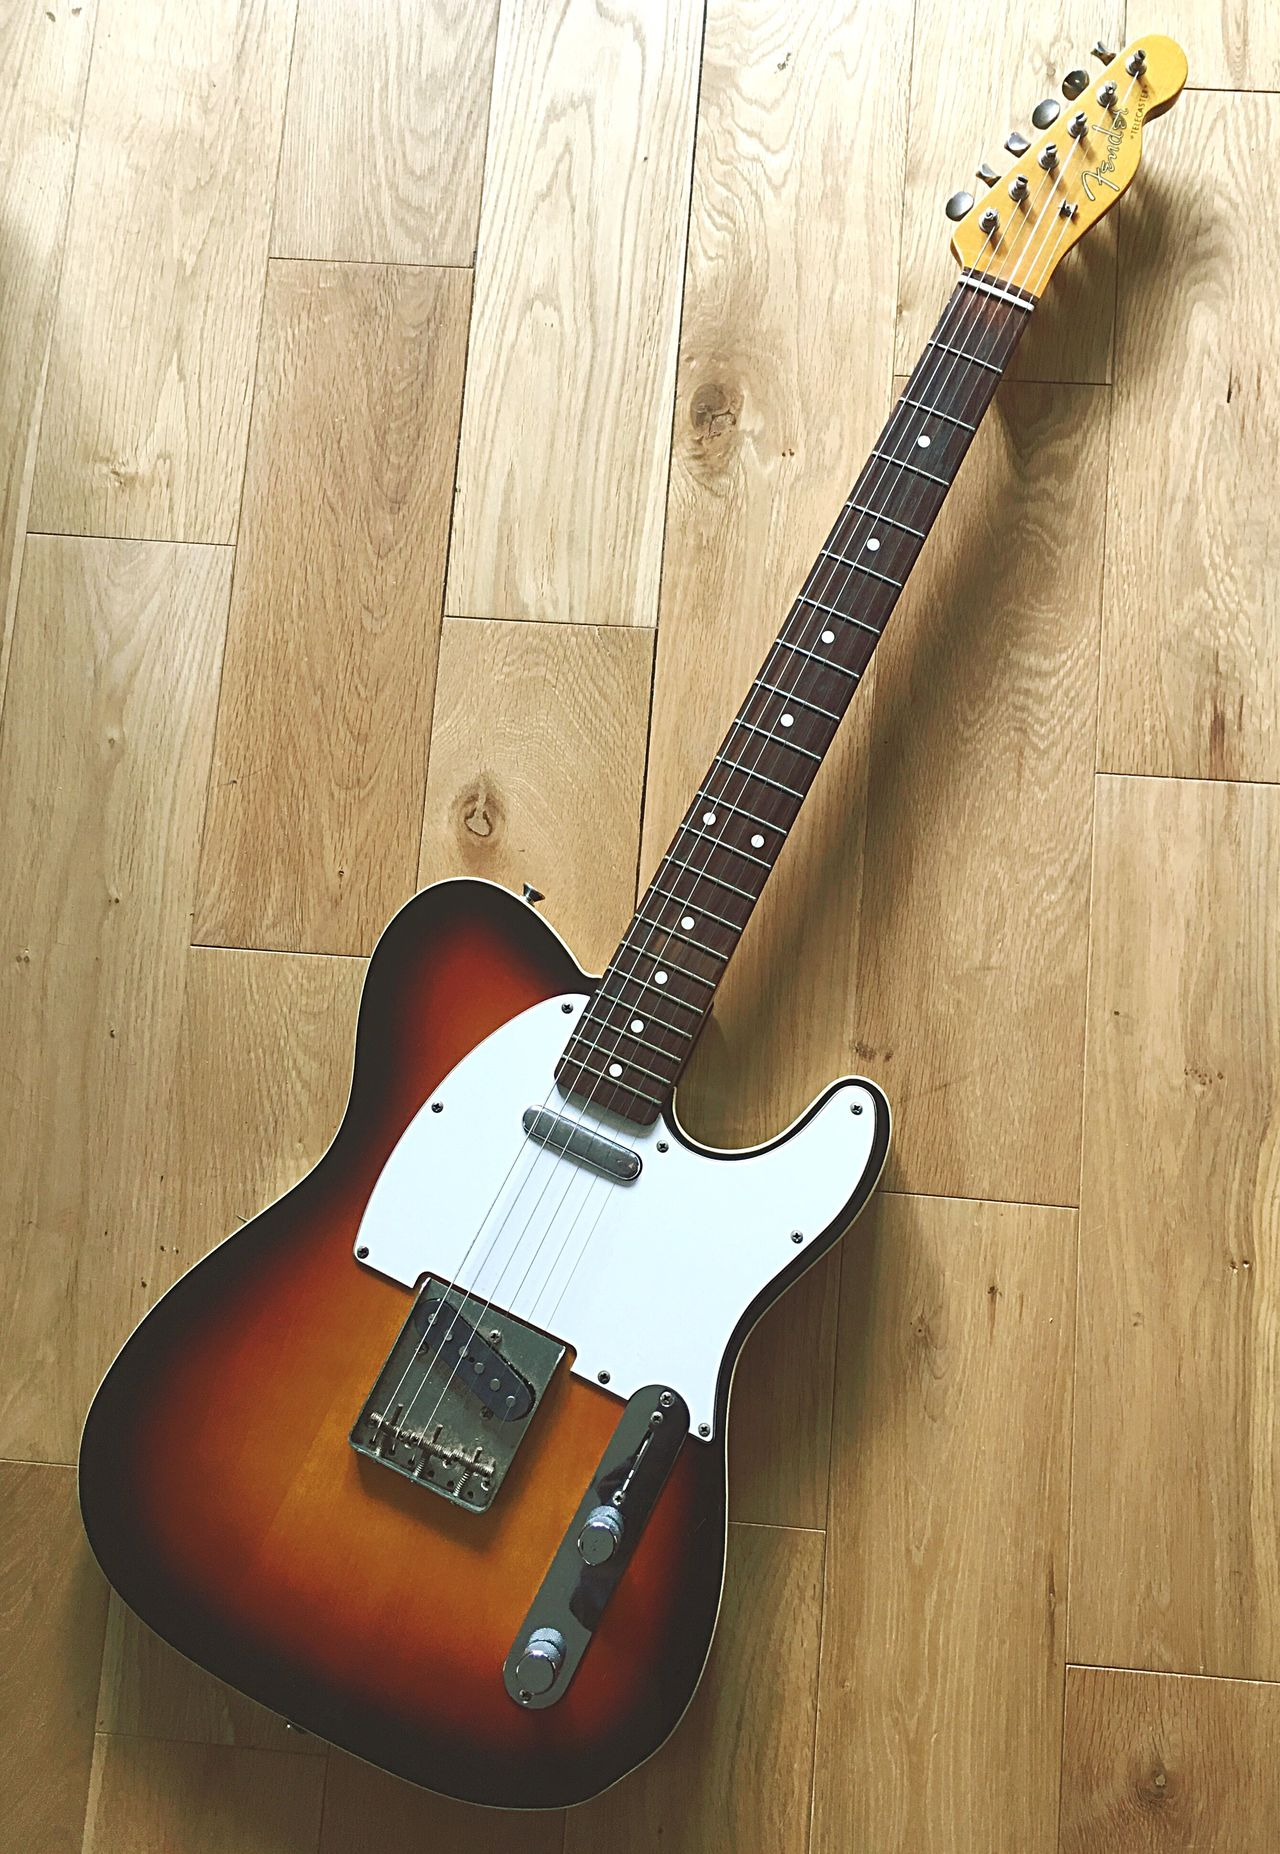 Rock 'n' Roll! Guitar Music Musical Instrument Arts Culture And Entertainment Electric Guitar No People Fender Telecaster Rock N Roll